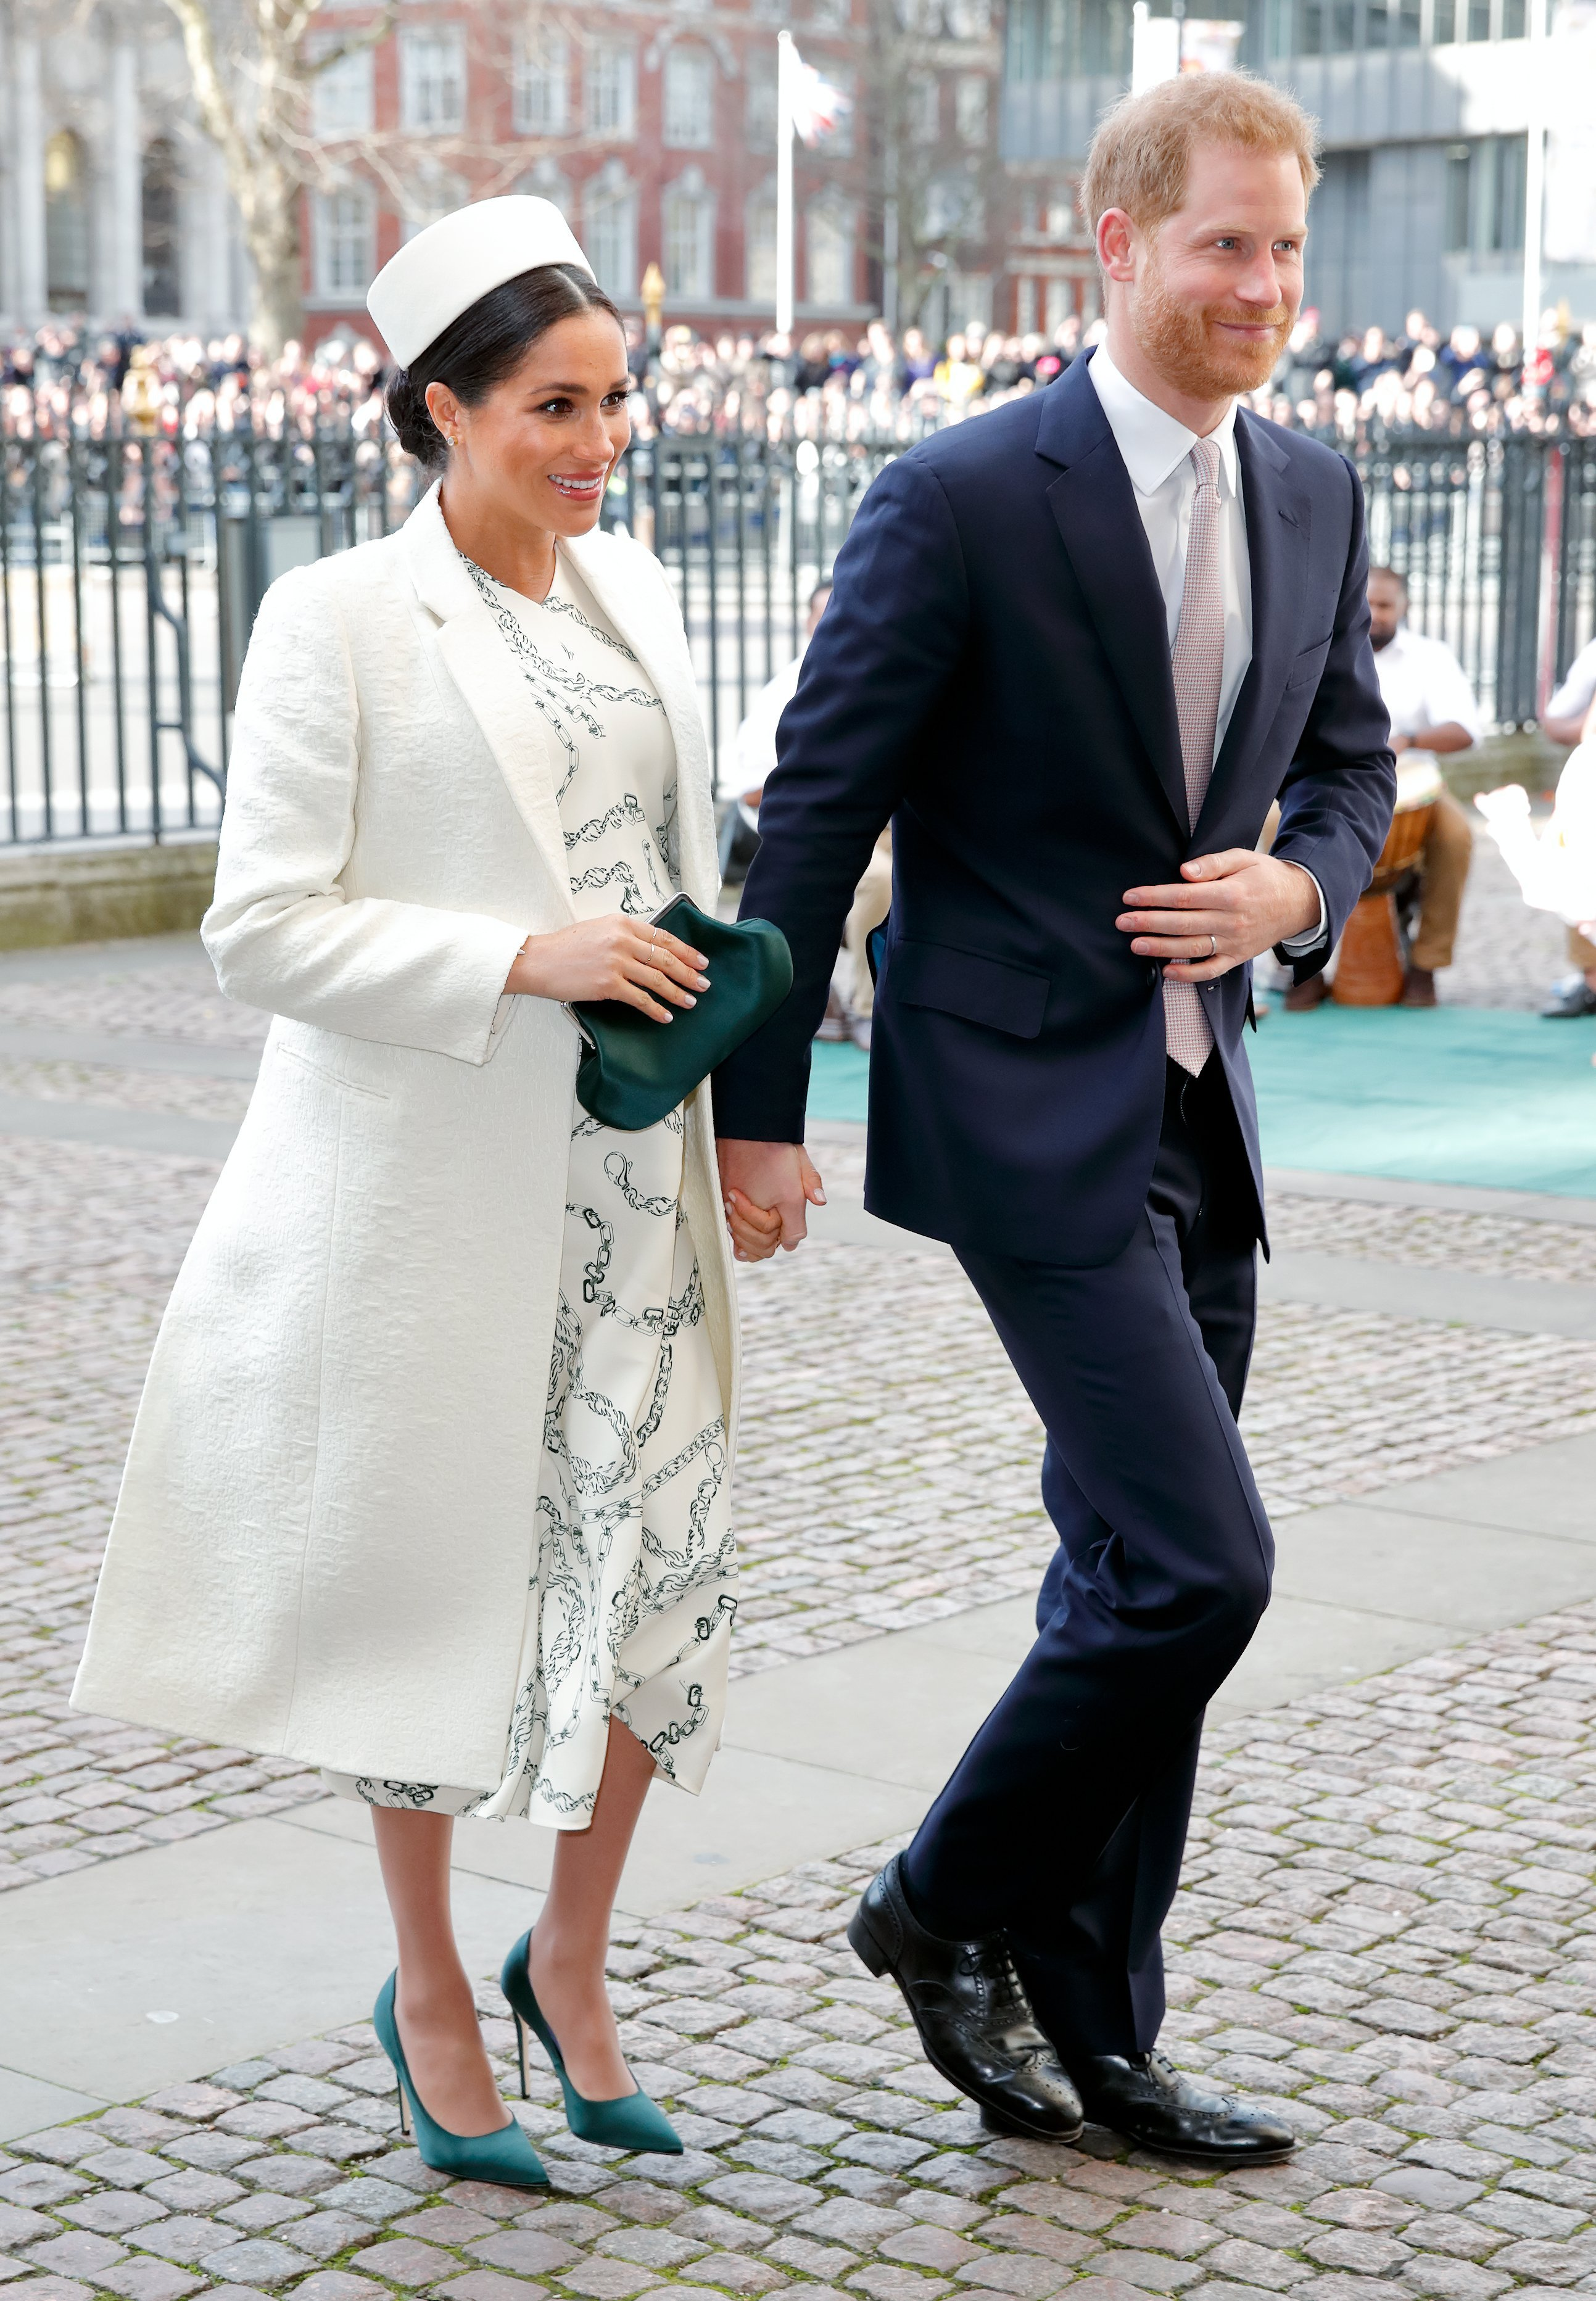 Meghan Markle and Prince Harry on Commonwealth Day in March 2019 | Photo: Getty Images